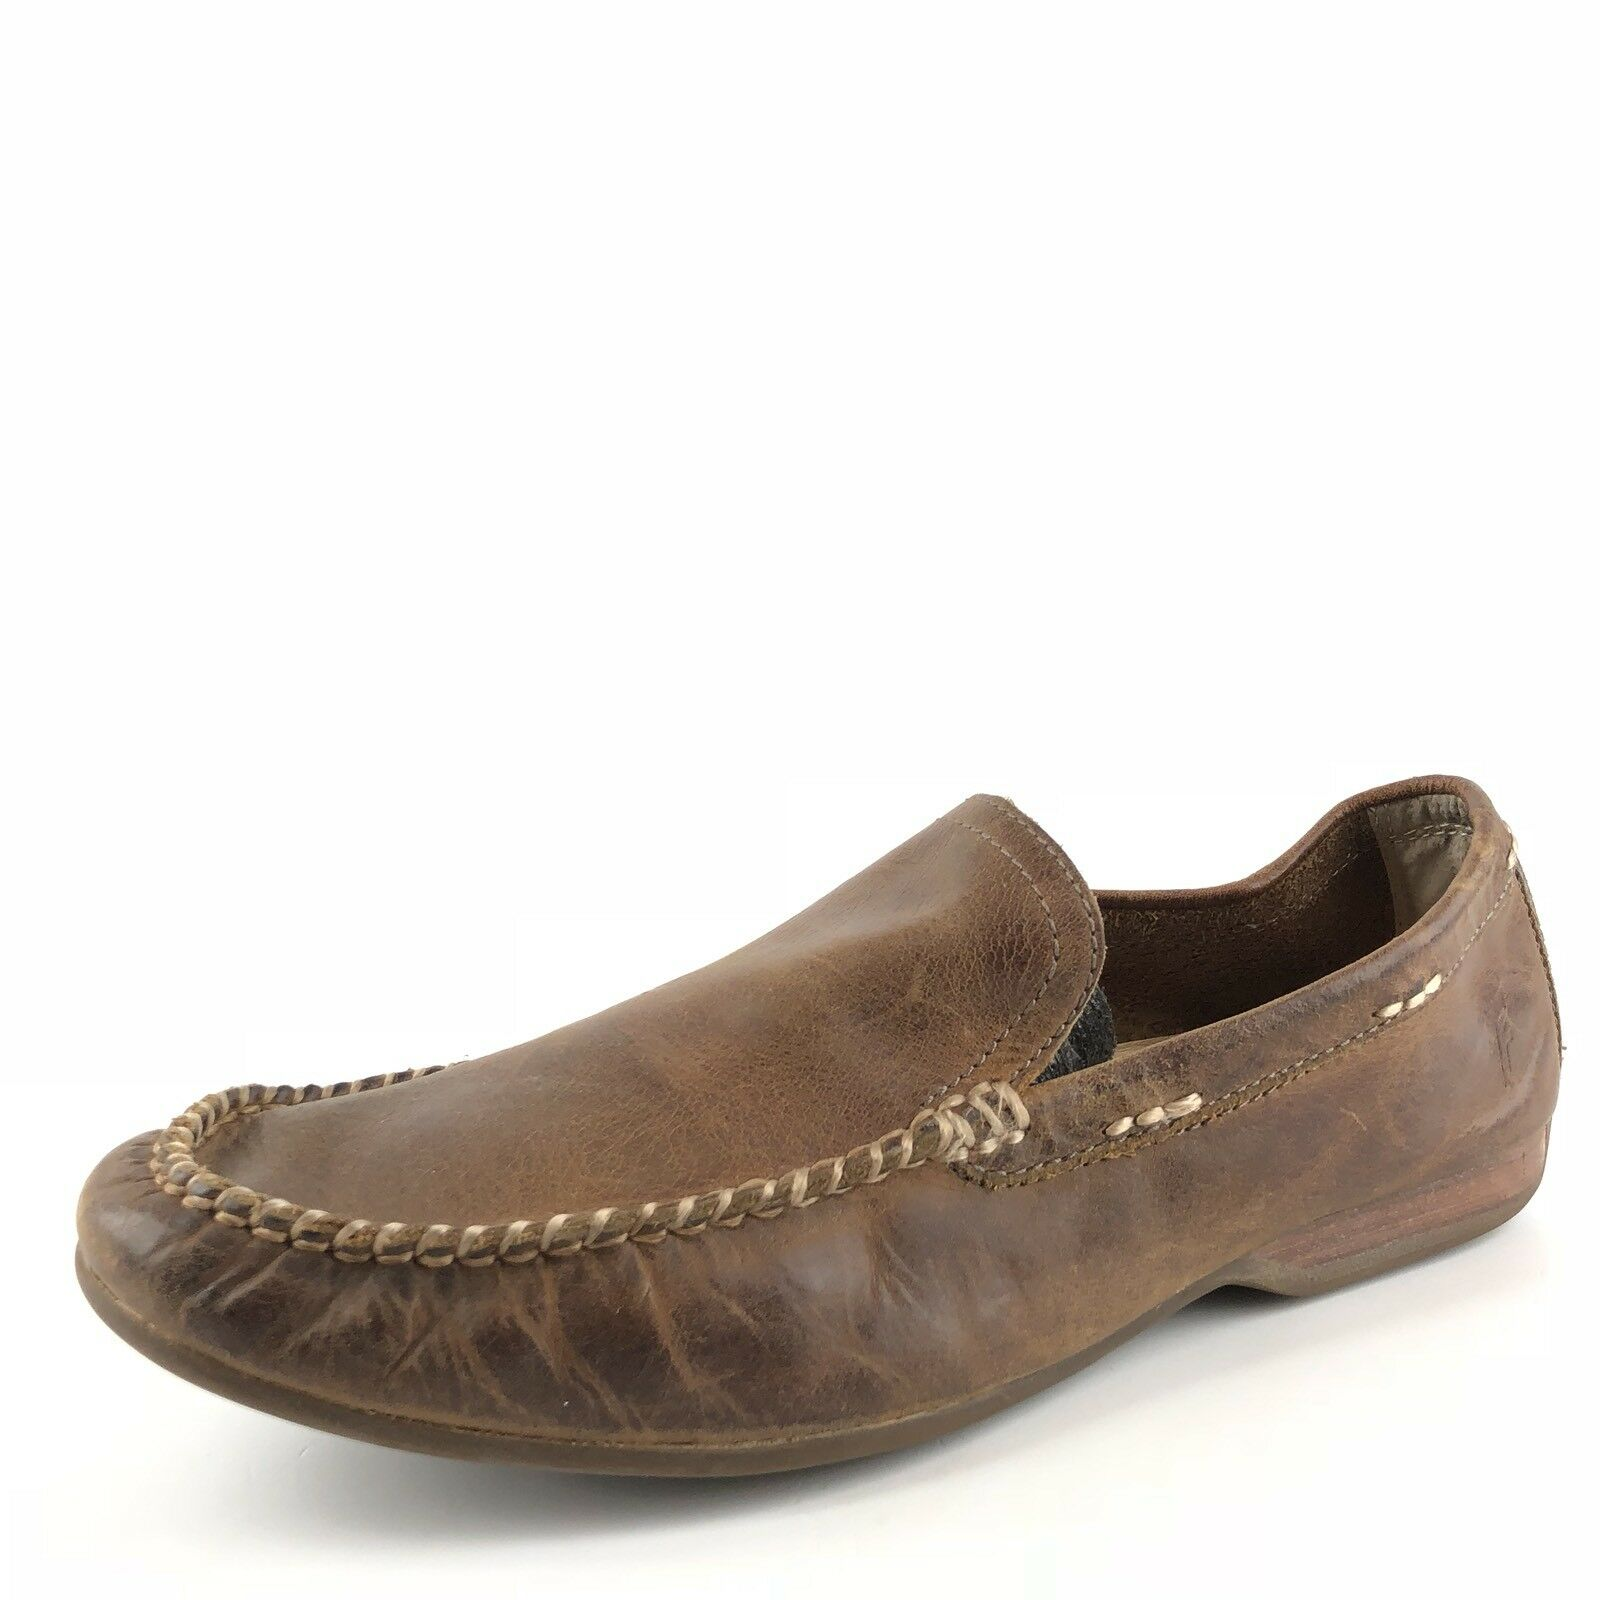 696c1eed20c Frye Lewis Venetian Brown Brown Brown Leather Loafers Driving Mocs Mens Size  7.5 M 8a8a00